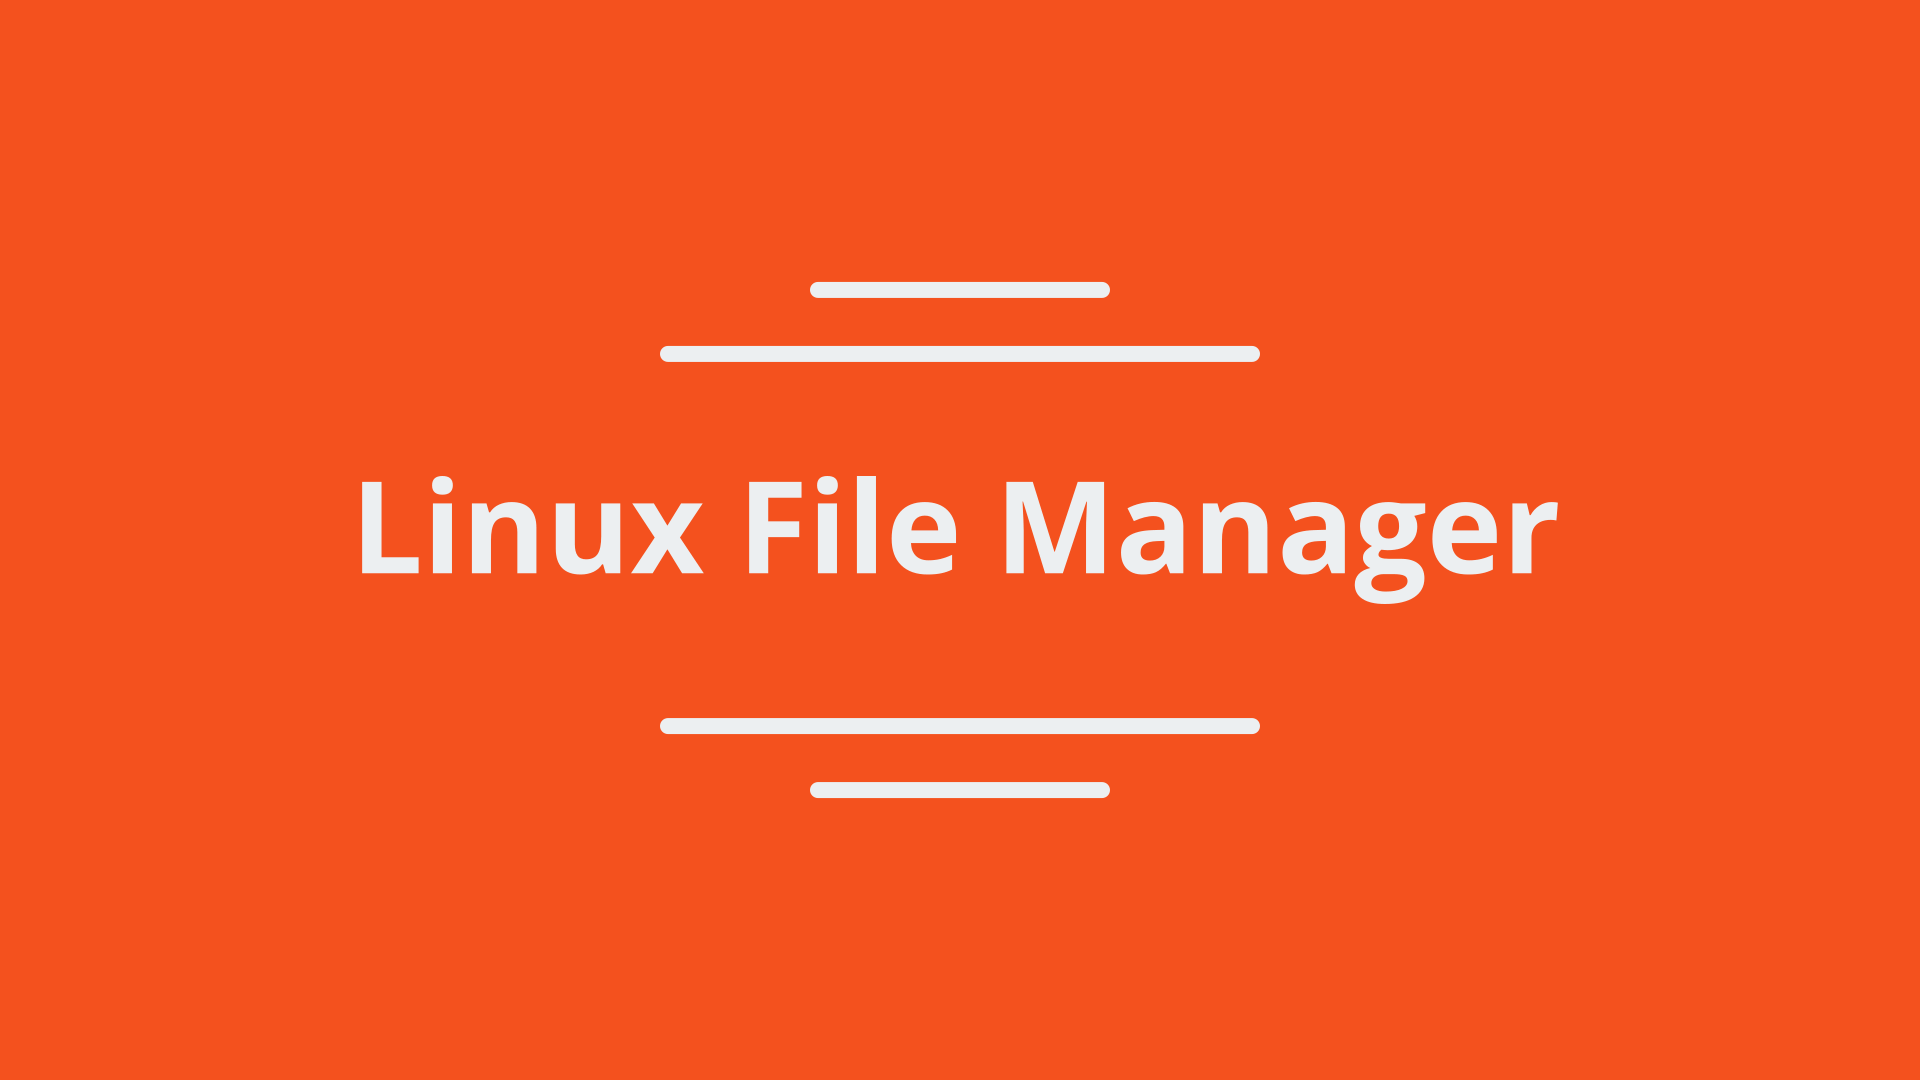 Linux File Manager